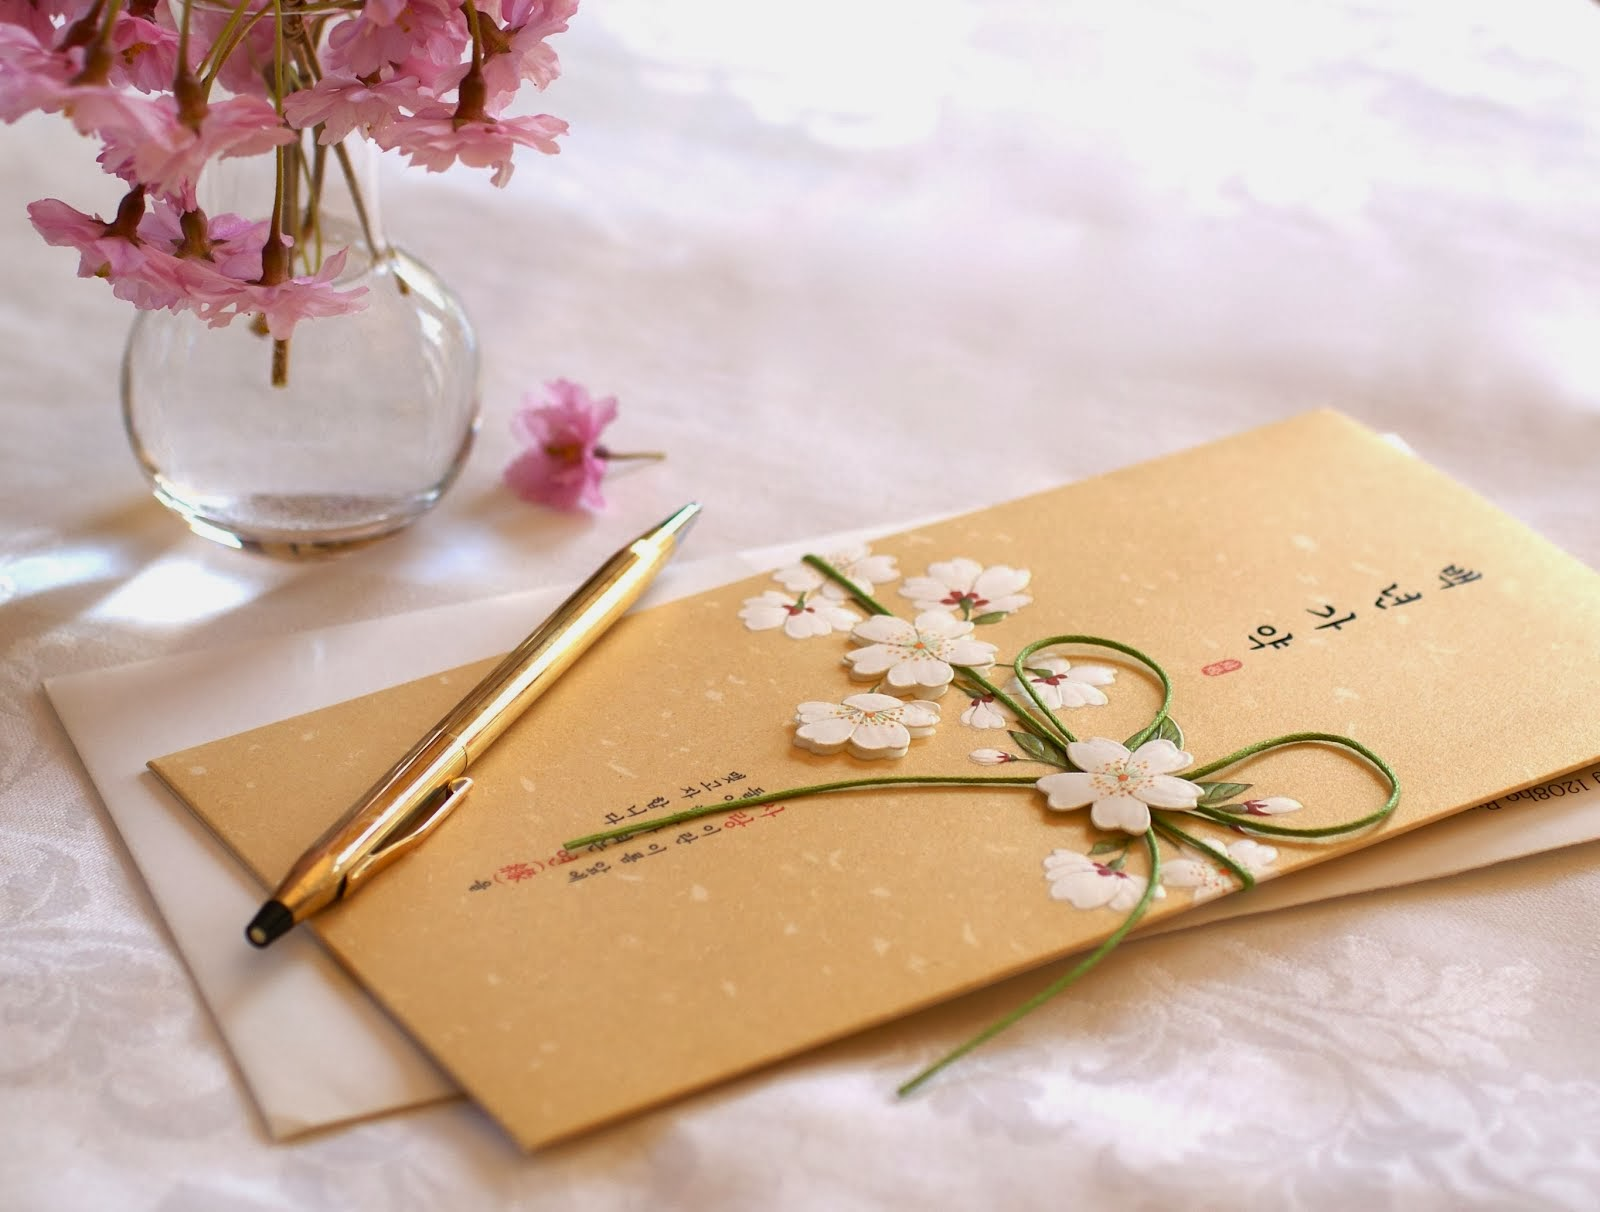 Korea Calling !!: What to gift on Korean Cultural Ceremony's